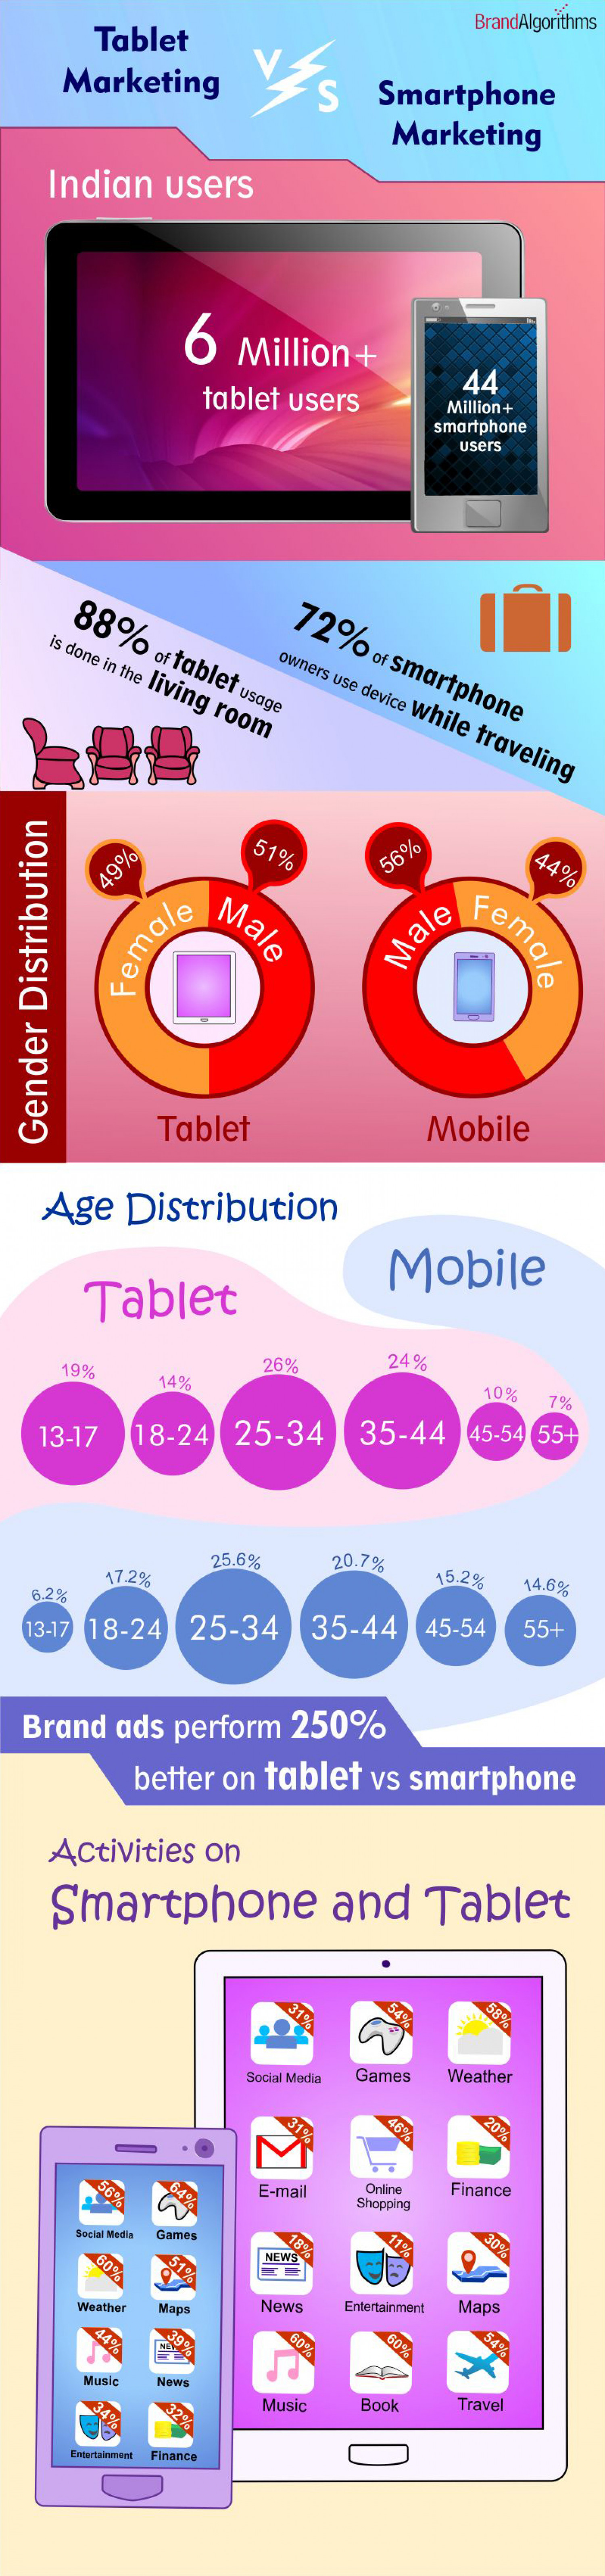 Tablet-Marketing as Distinct from Mobile-Marketing Infographic